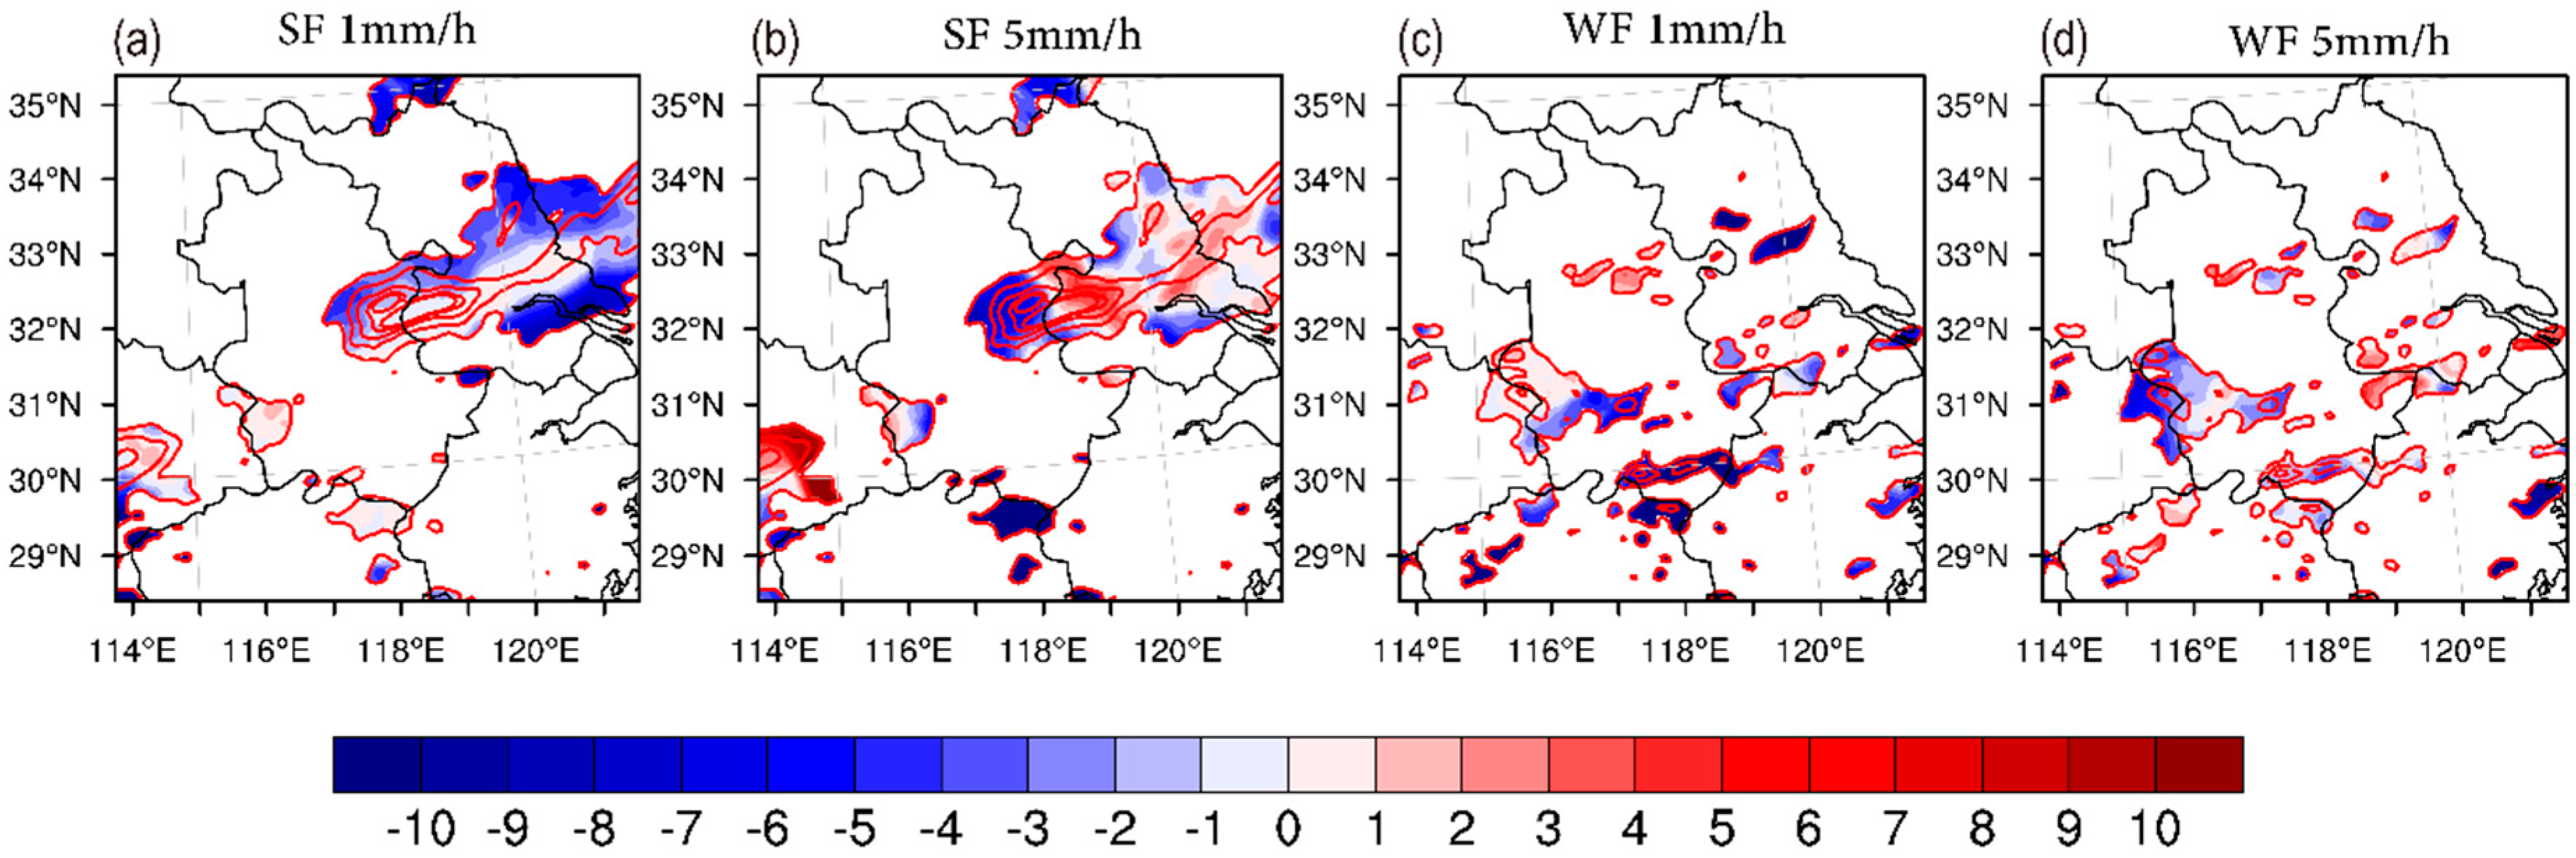 Atmosphere | Free Full-Text | Spatial Predictability of